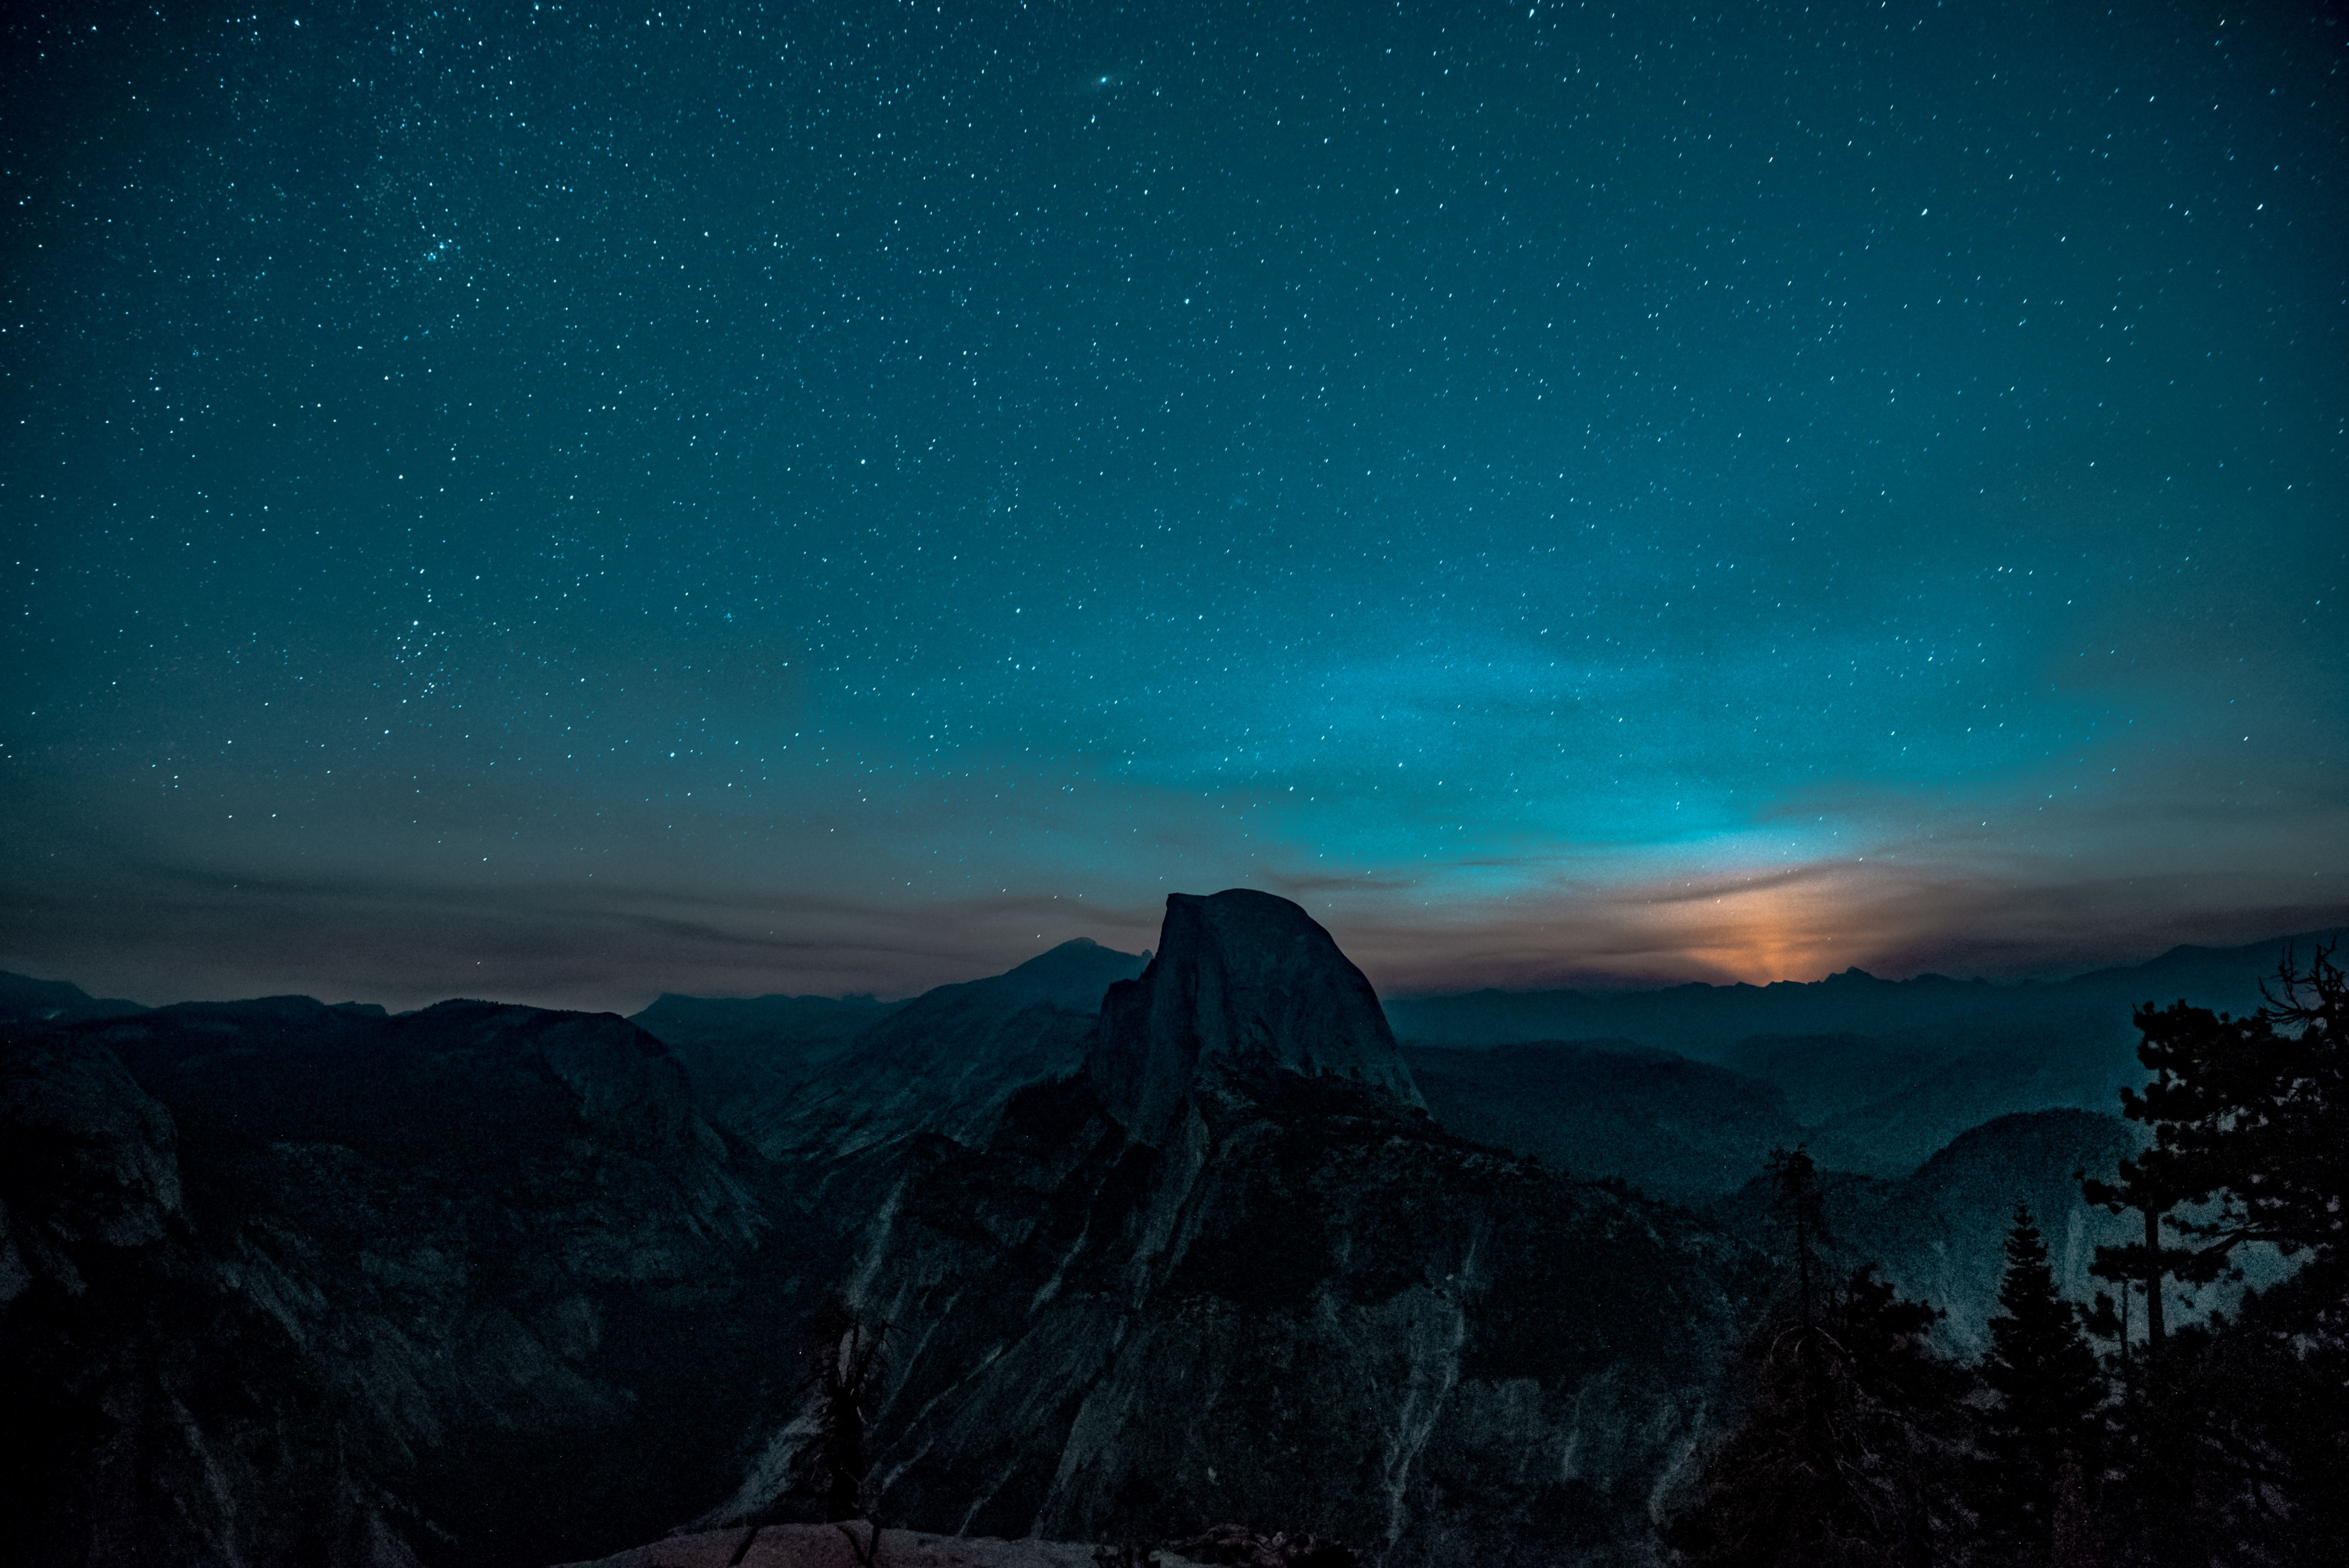 Starry sky over mountains.